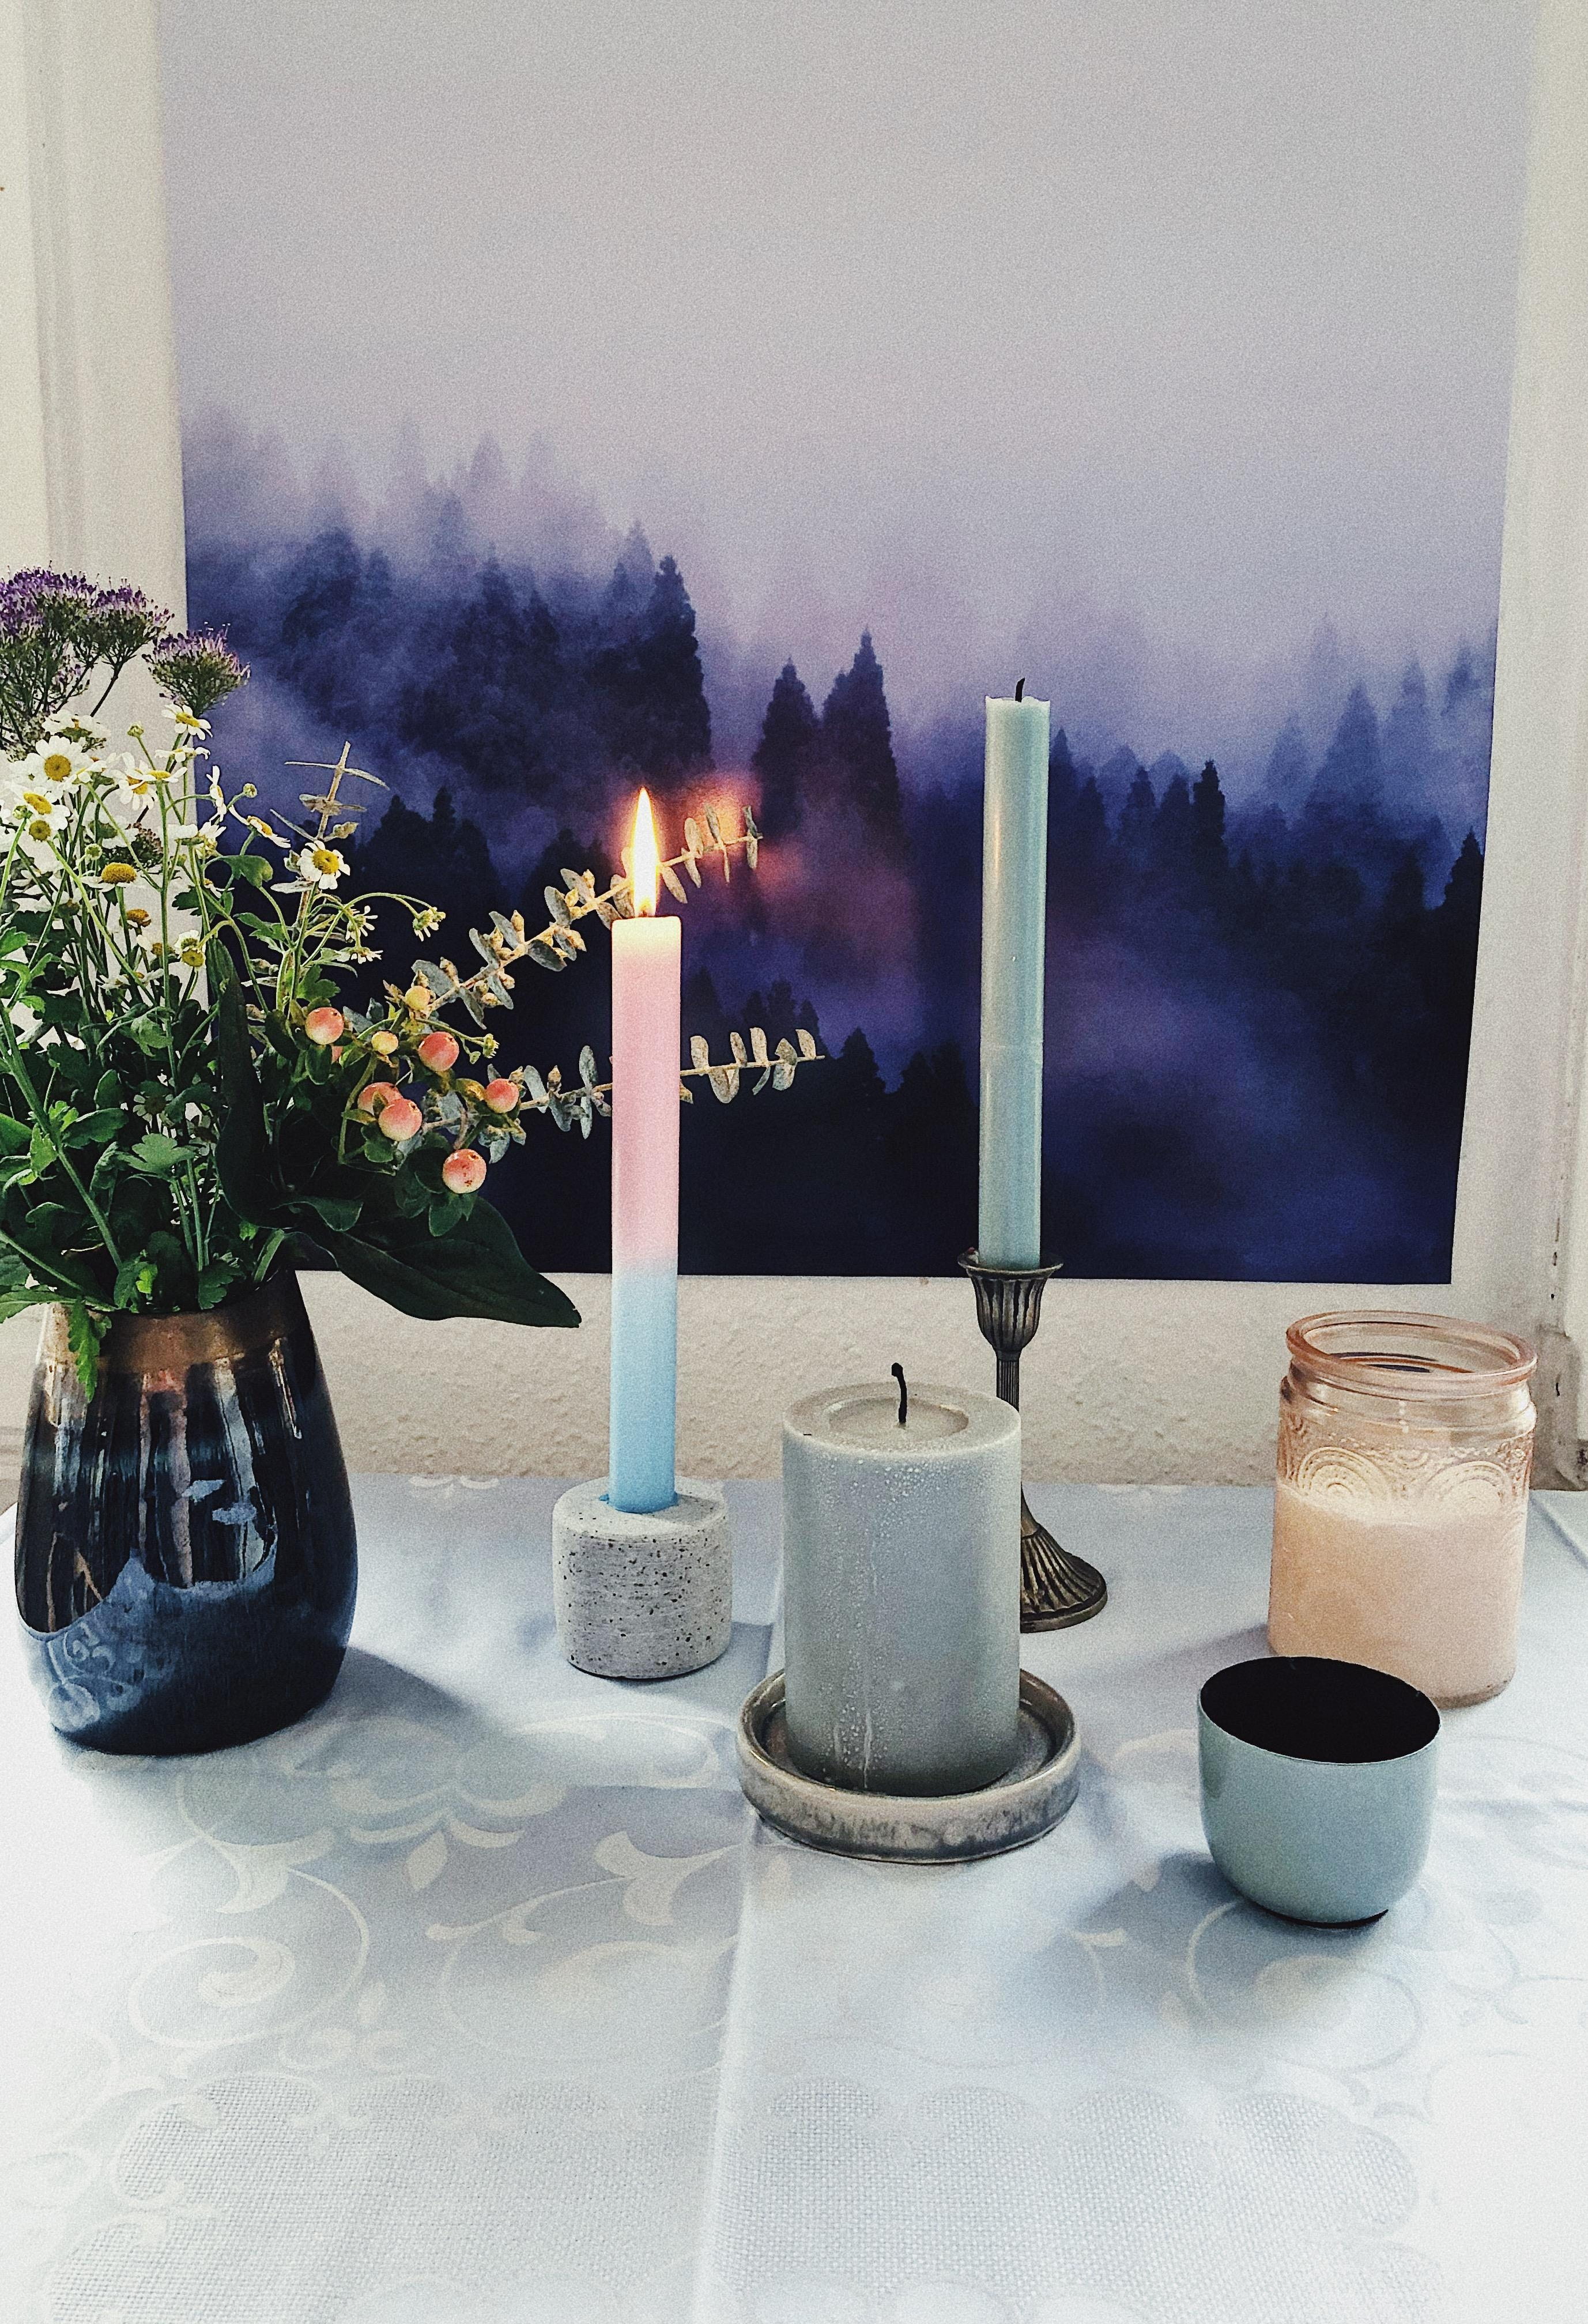 PALE LIGHT IN THE DARK